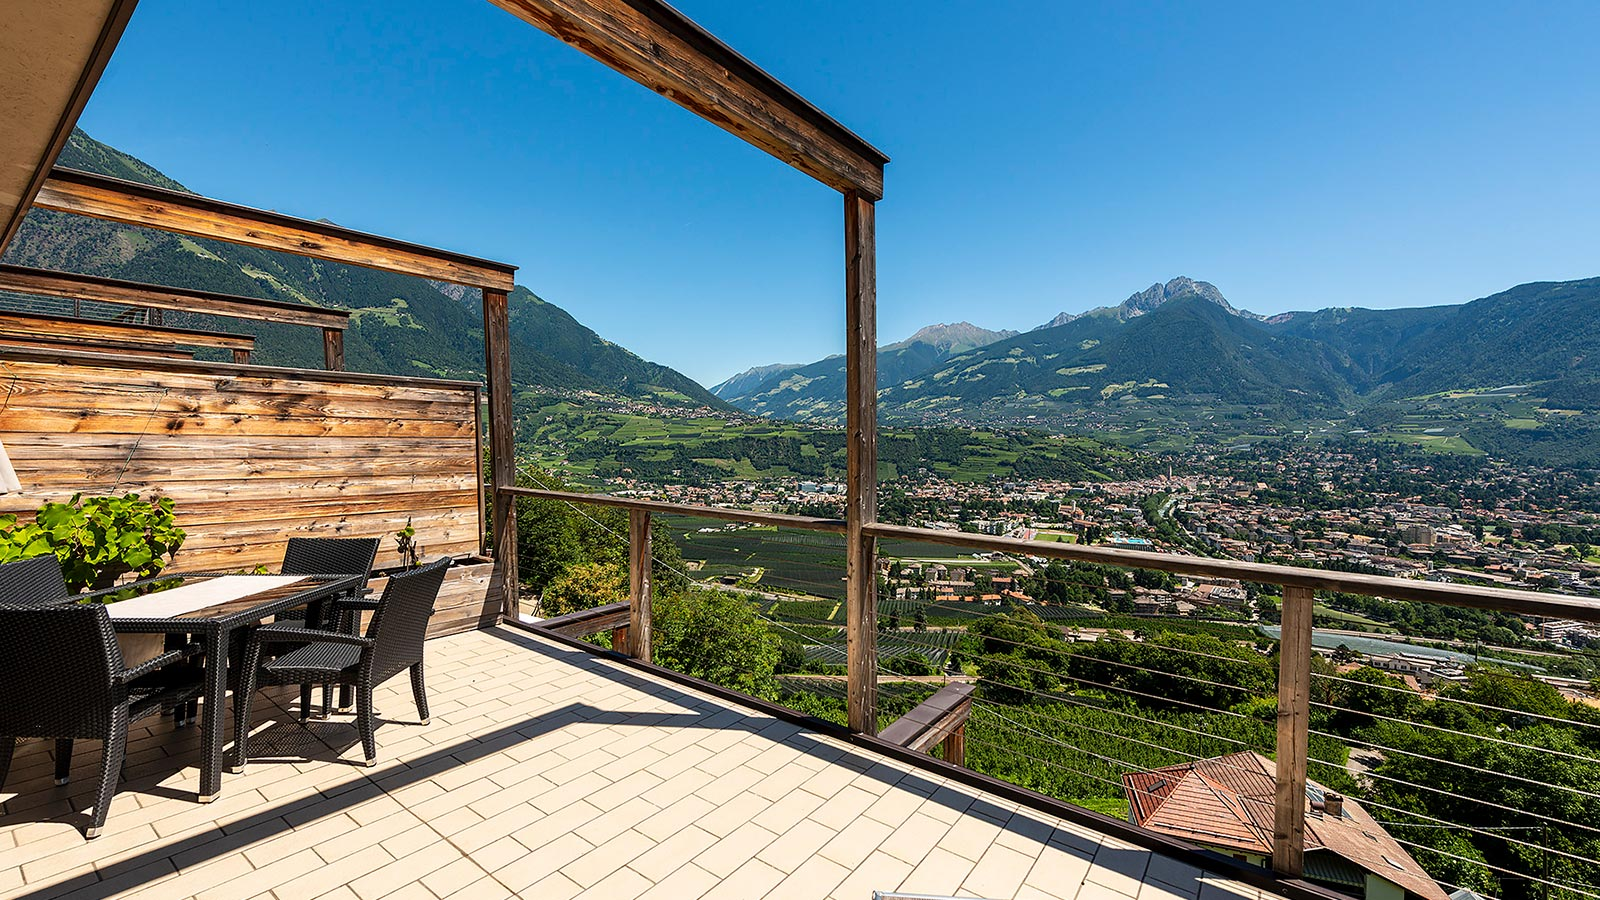 The terrace of our Residence holiday apartments in Marlengo with a view of the valley